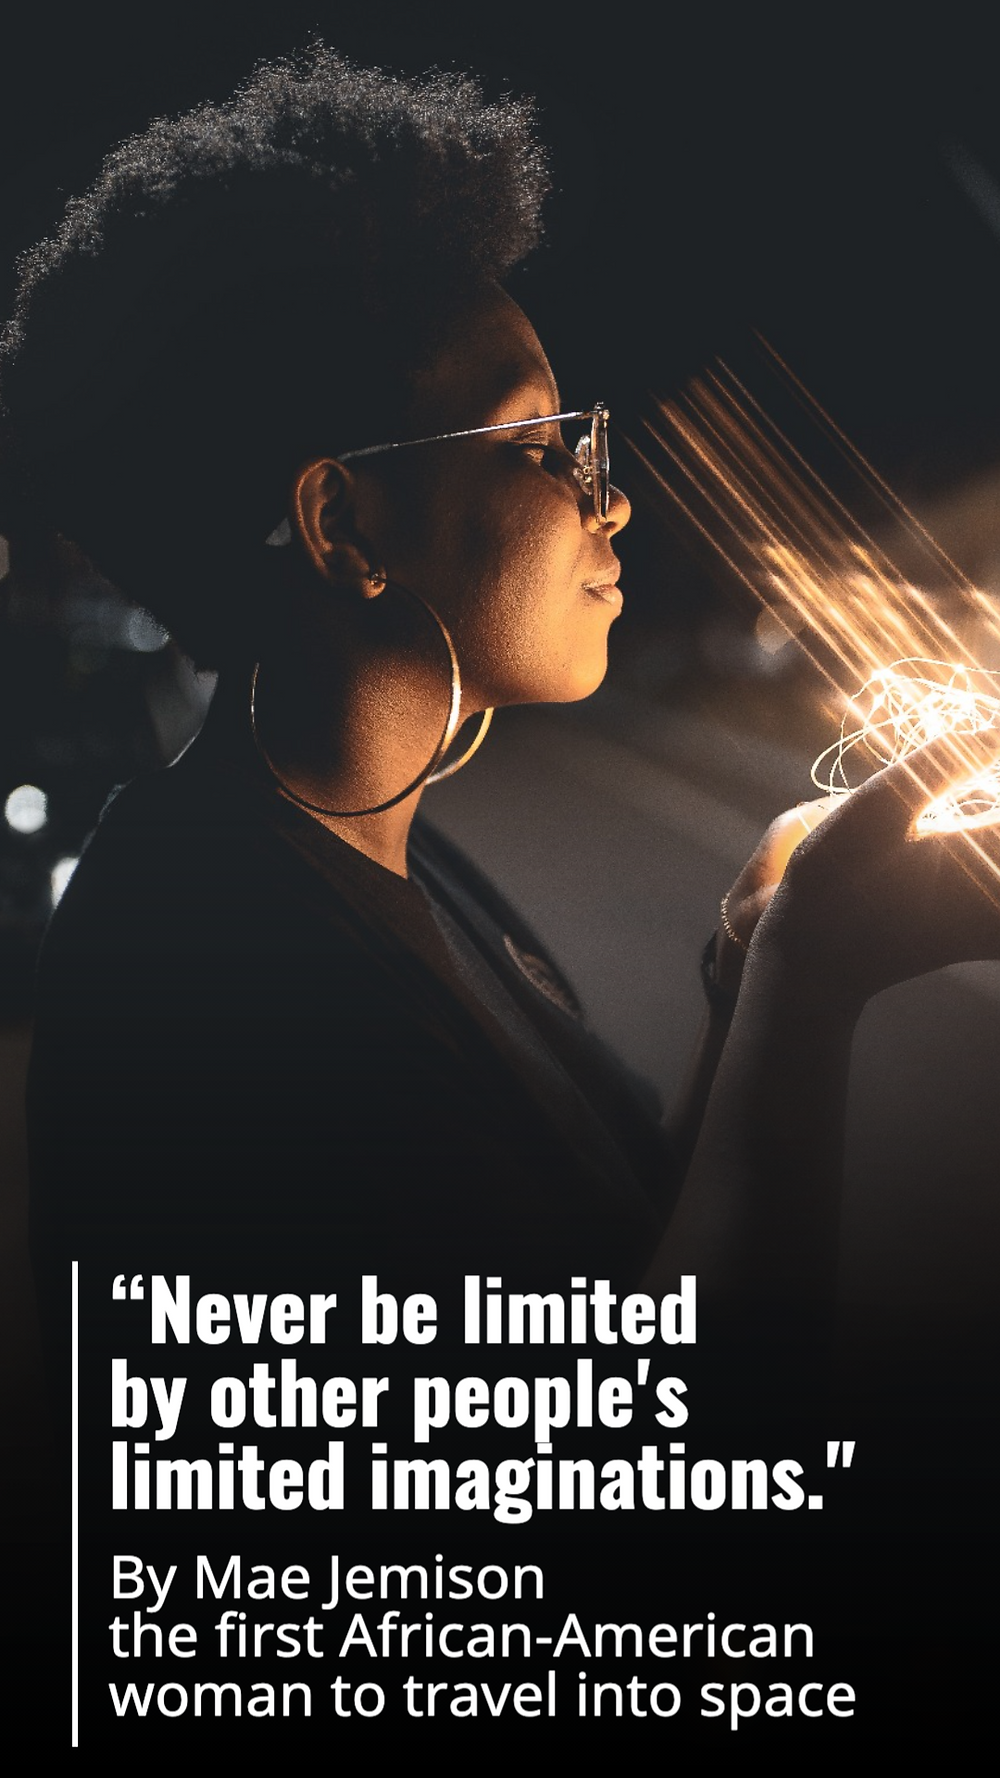 Mae Jemison quote social media story template